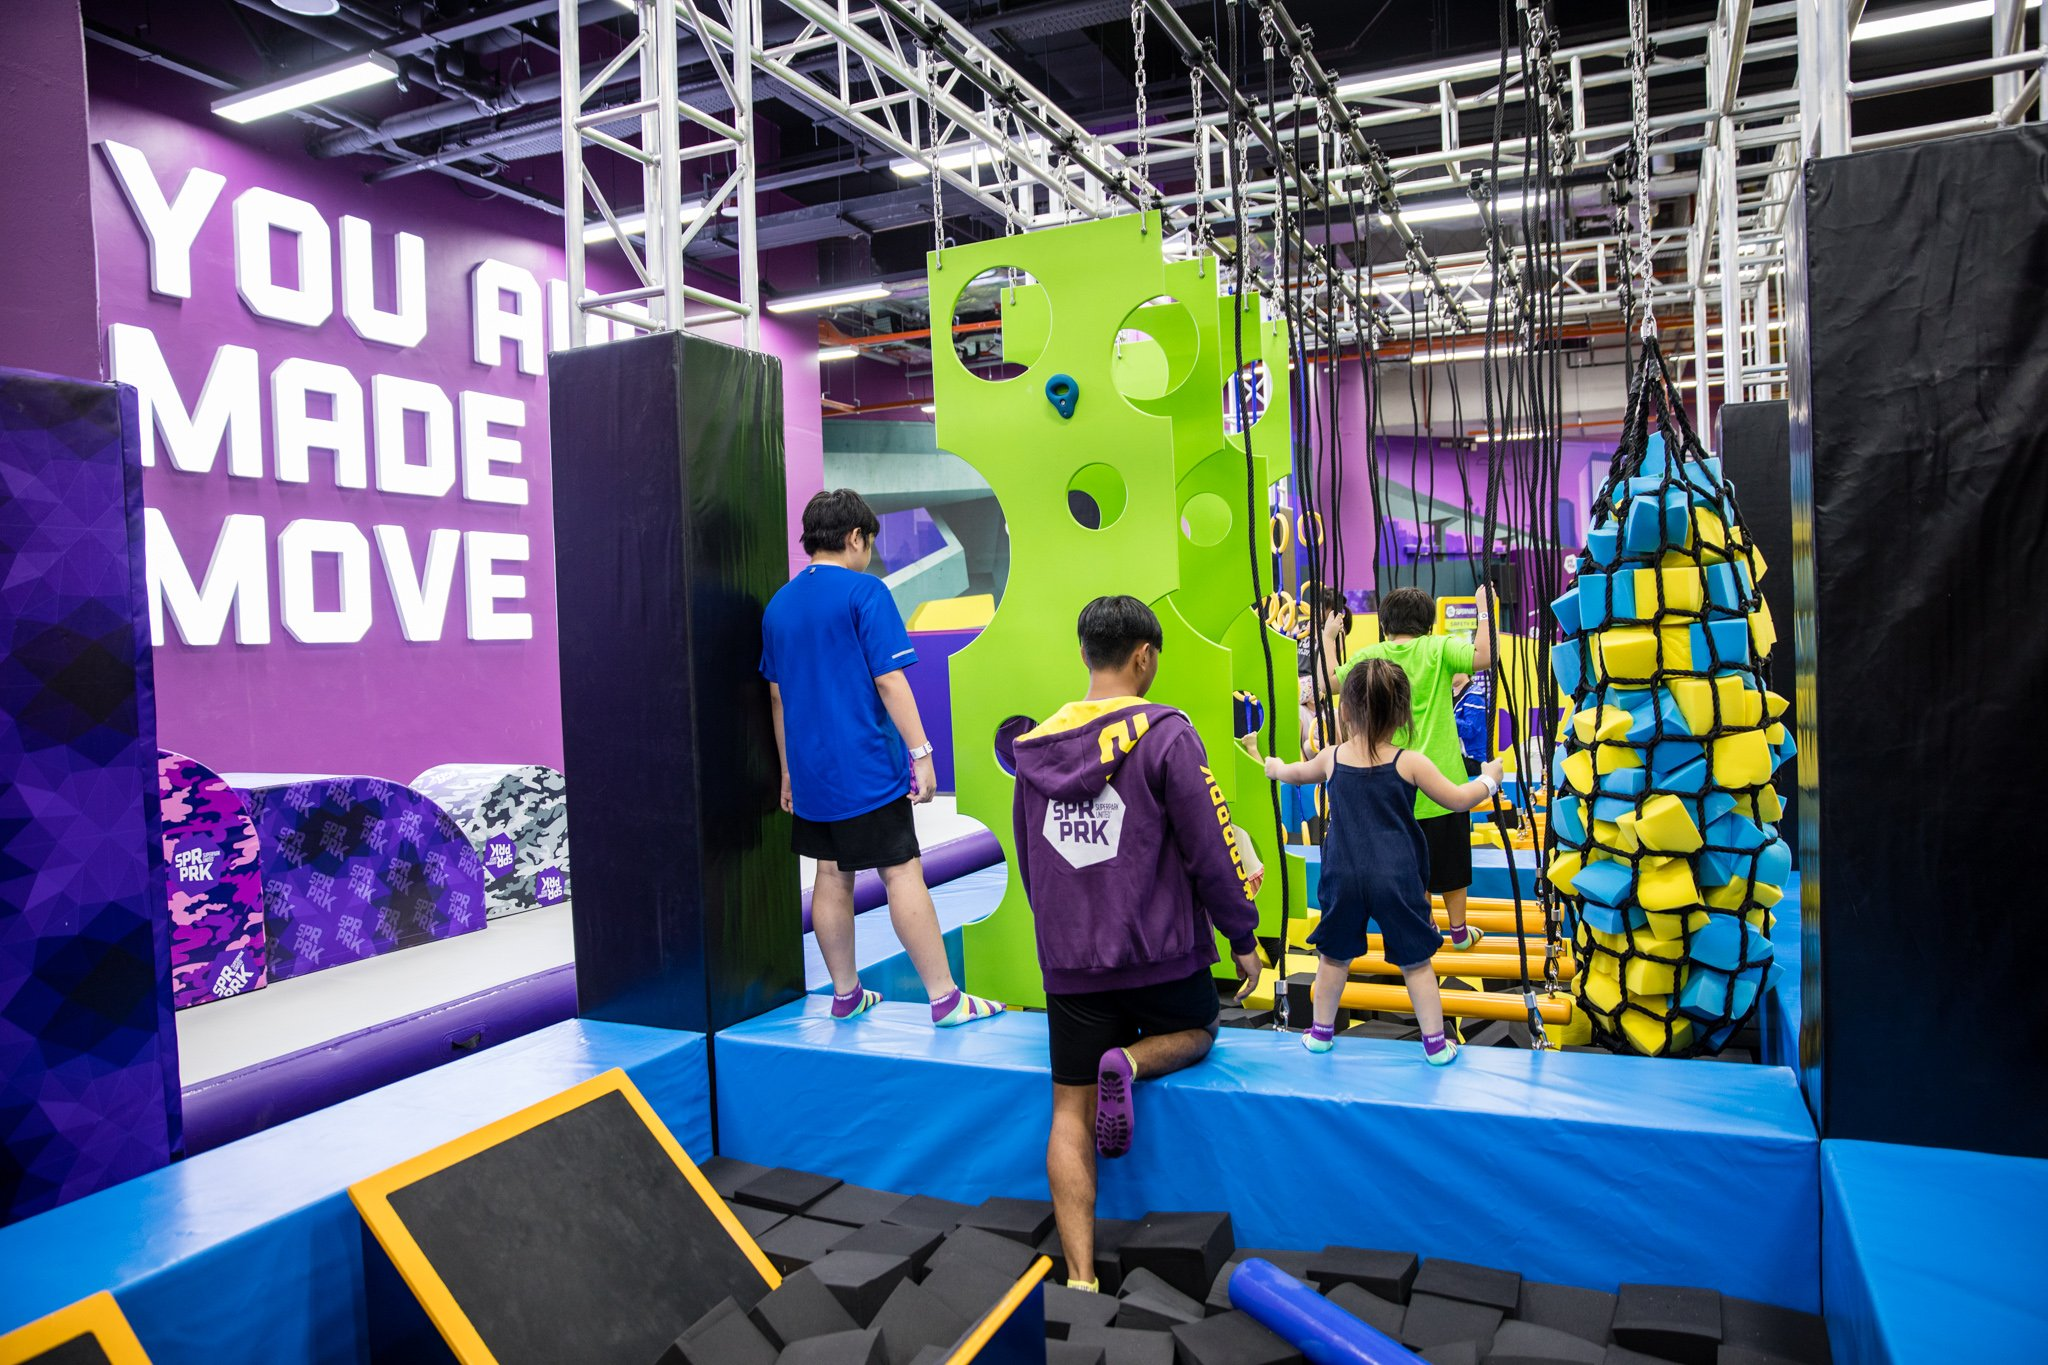 Ninja track, a kids-friendly version of the Ninja Warrior obstacle course.